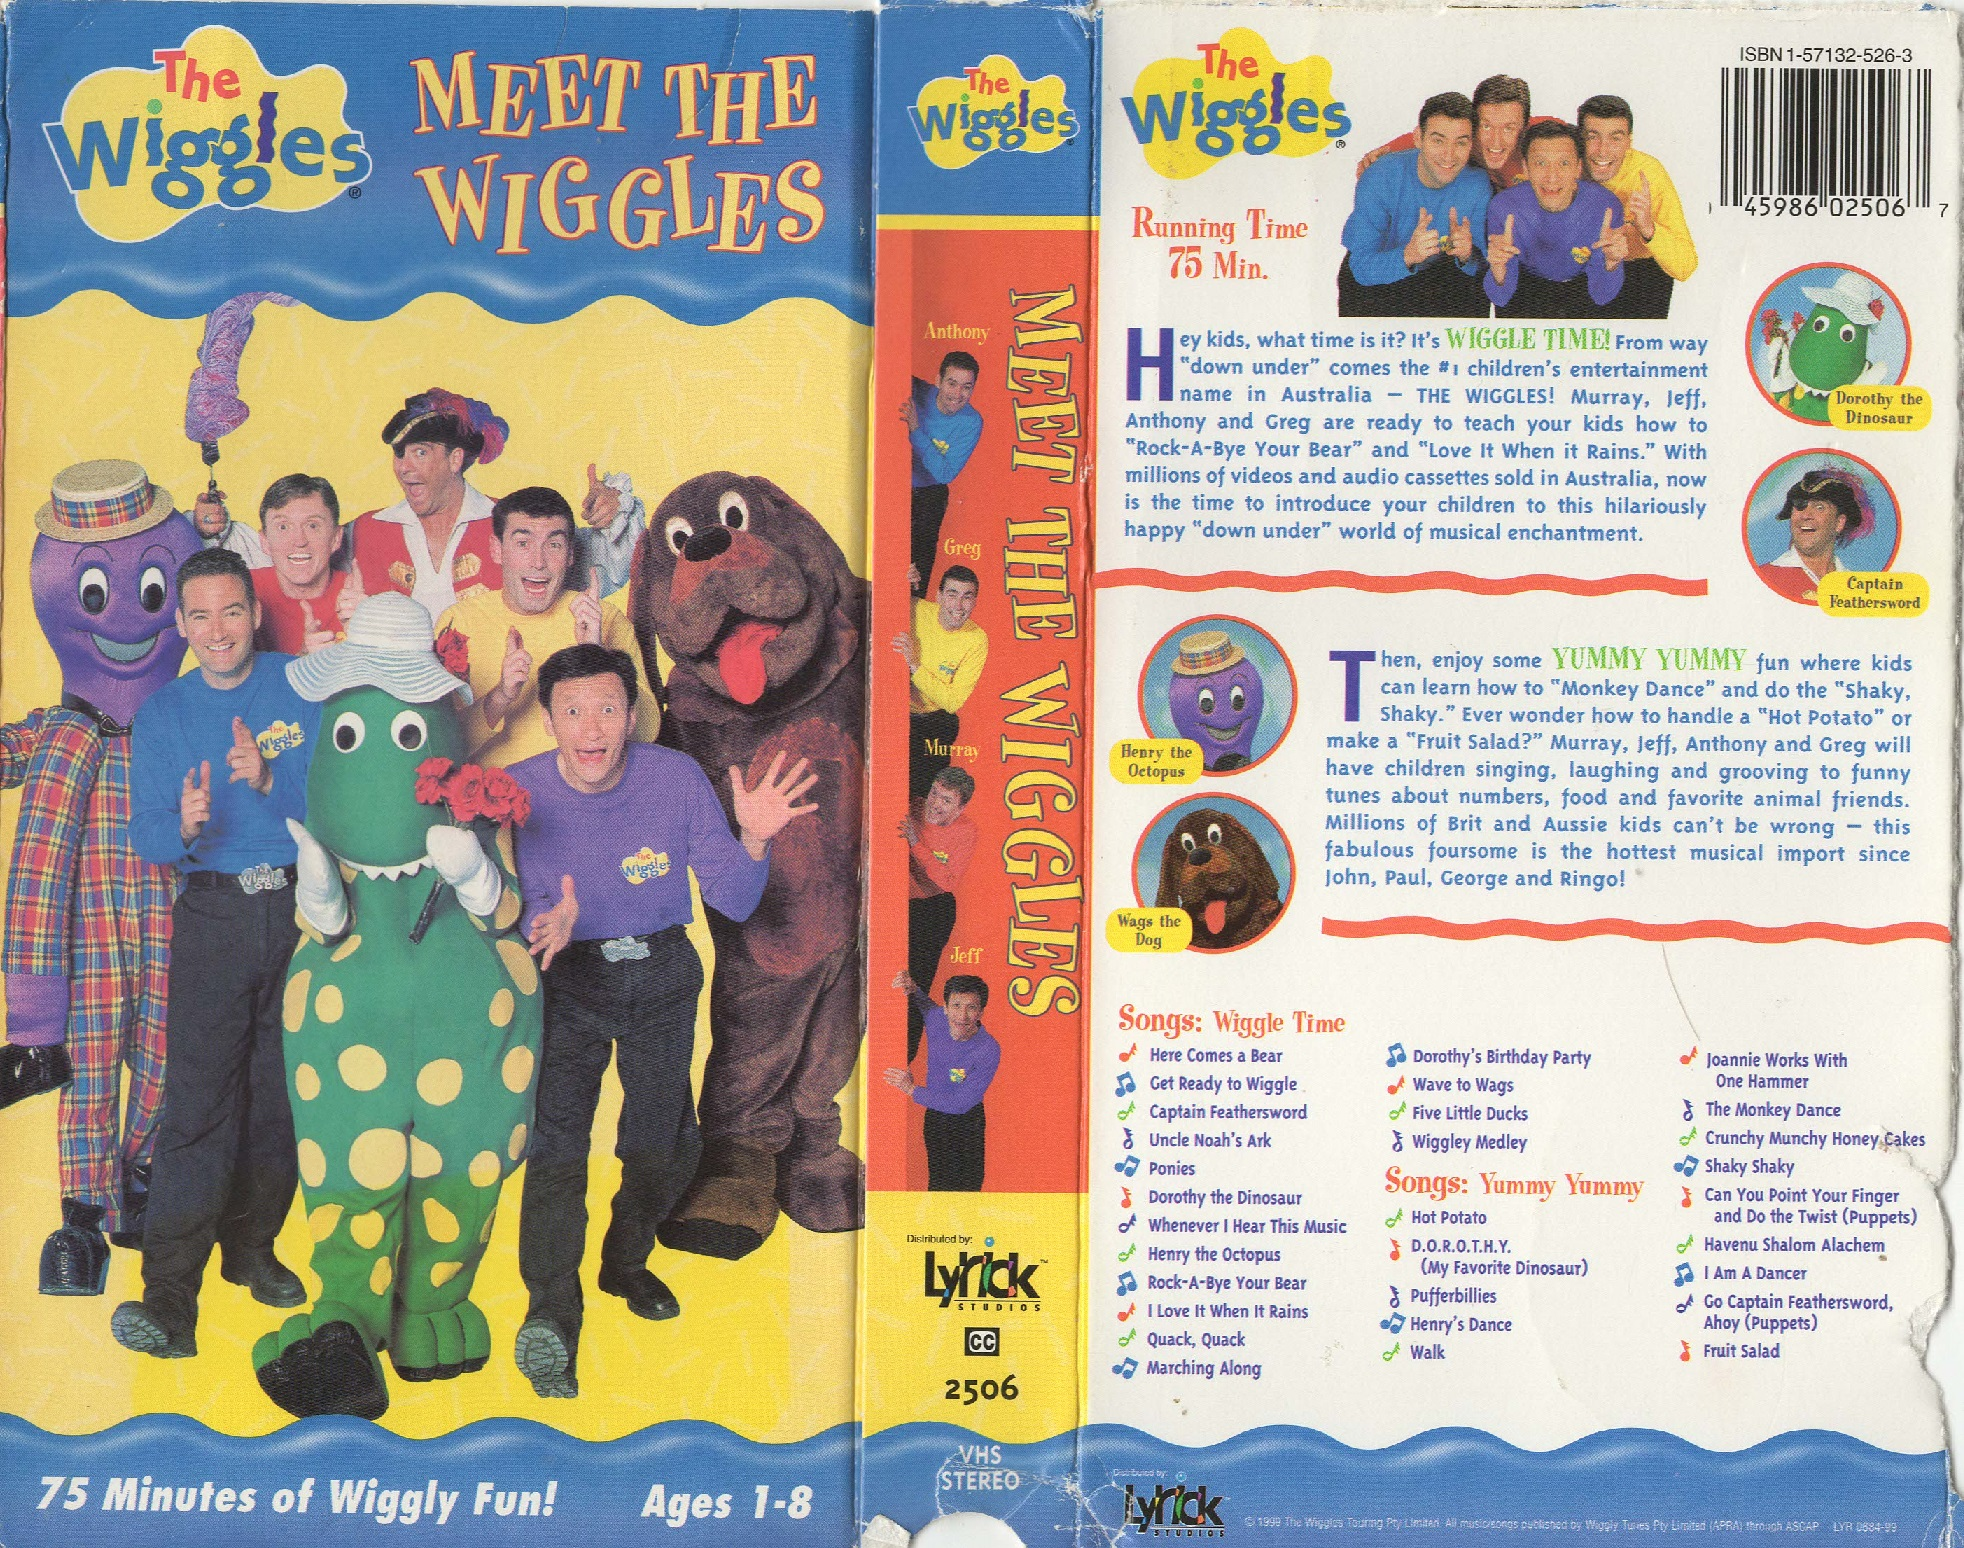 the wiggles 2014